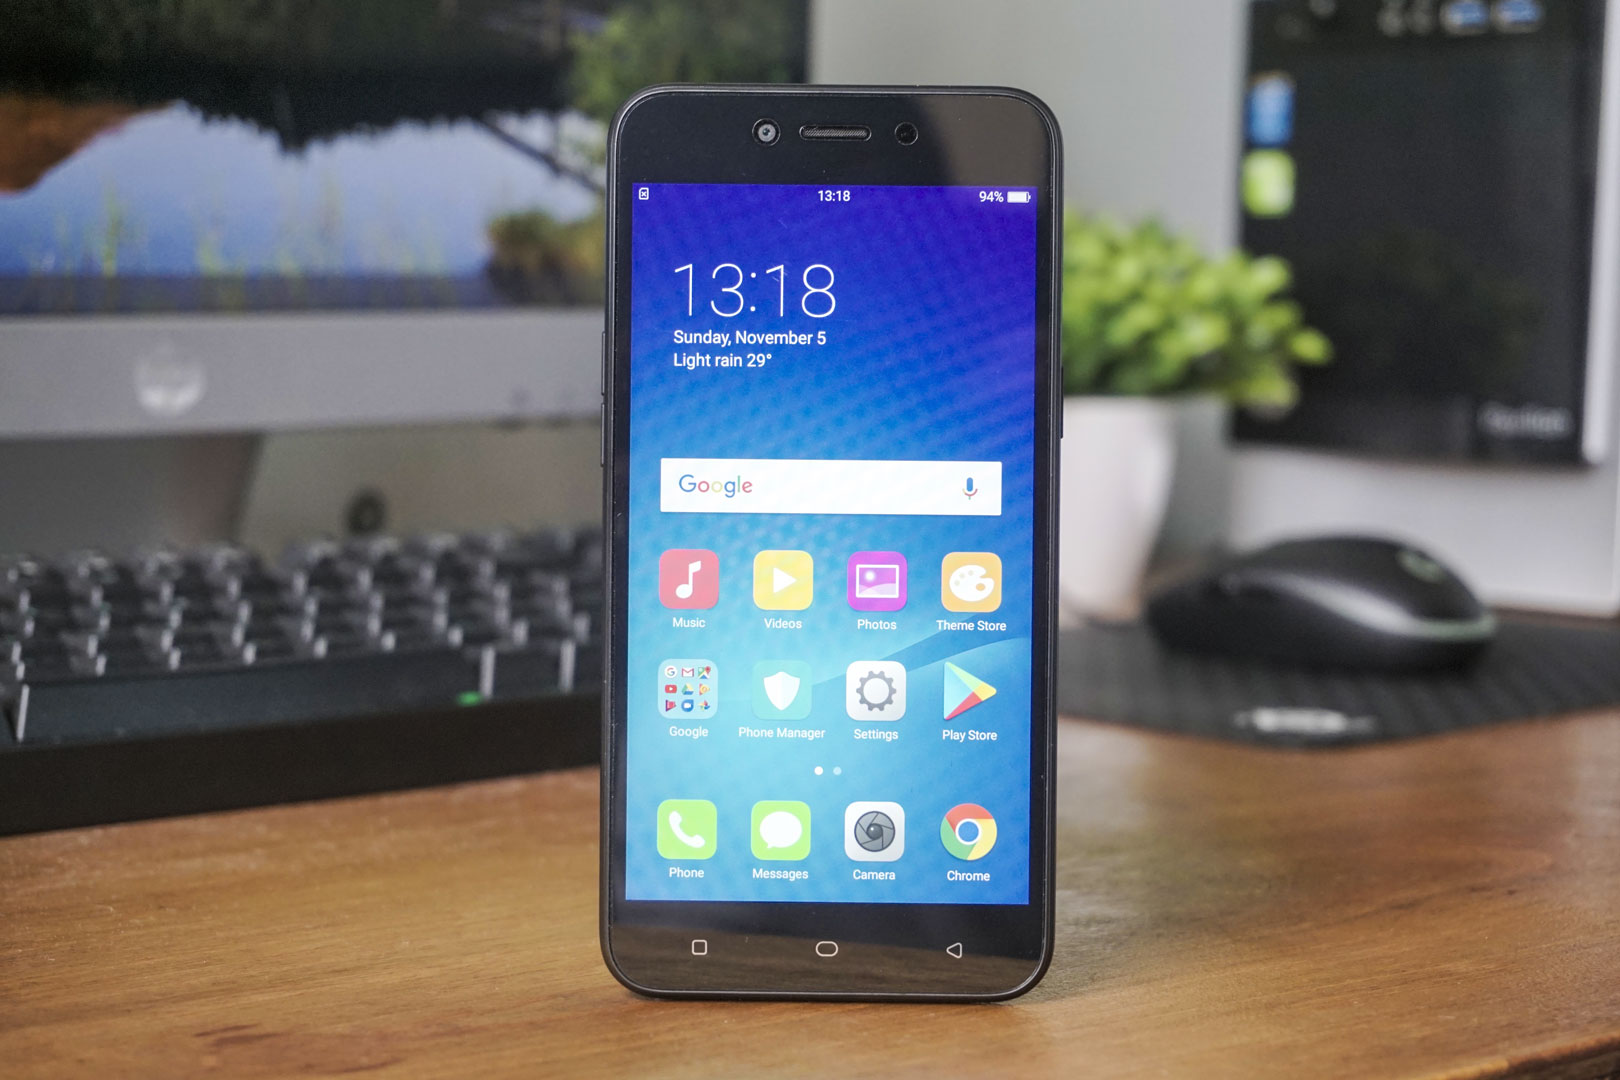 OPPO A71 review, OPPO A71 Review: A Good All-Rounder, Gadget Pilipinas